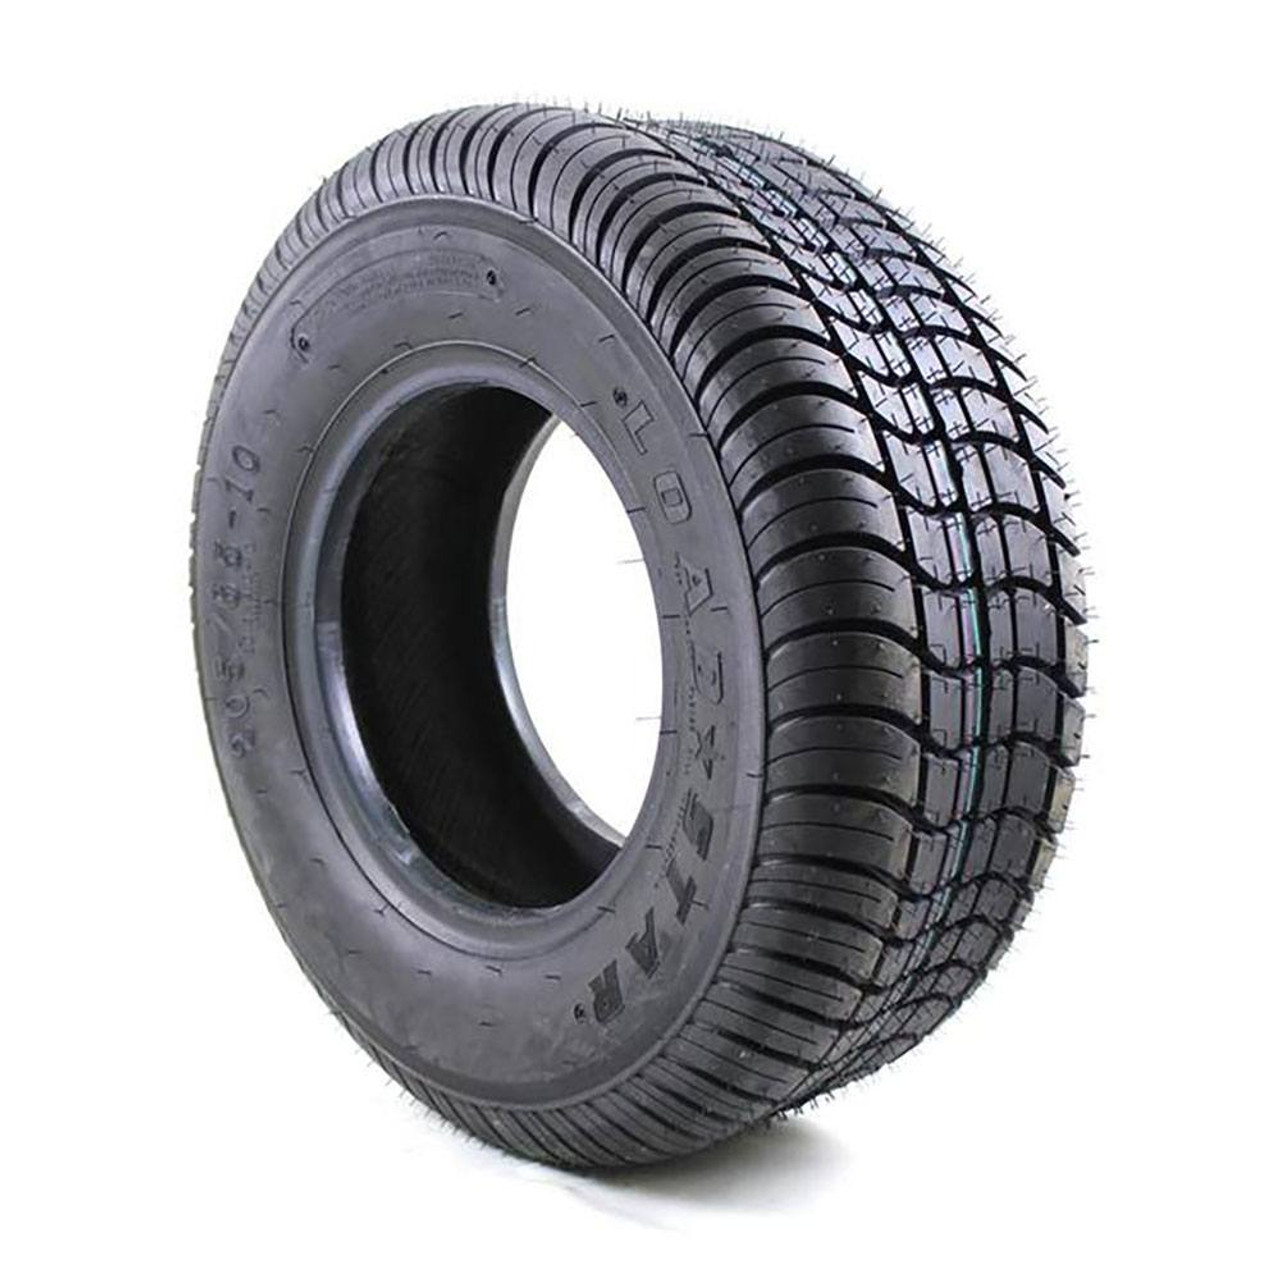 20.5X8.00-10 (205/65-10) Load Range E Bias Ply Trailer Tire - Kenda Loadstar